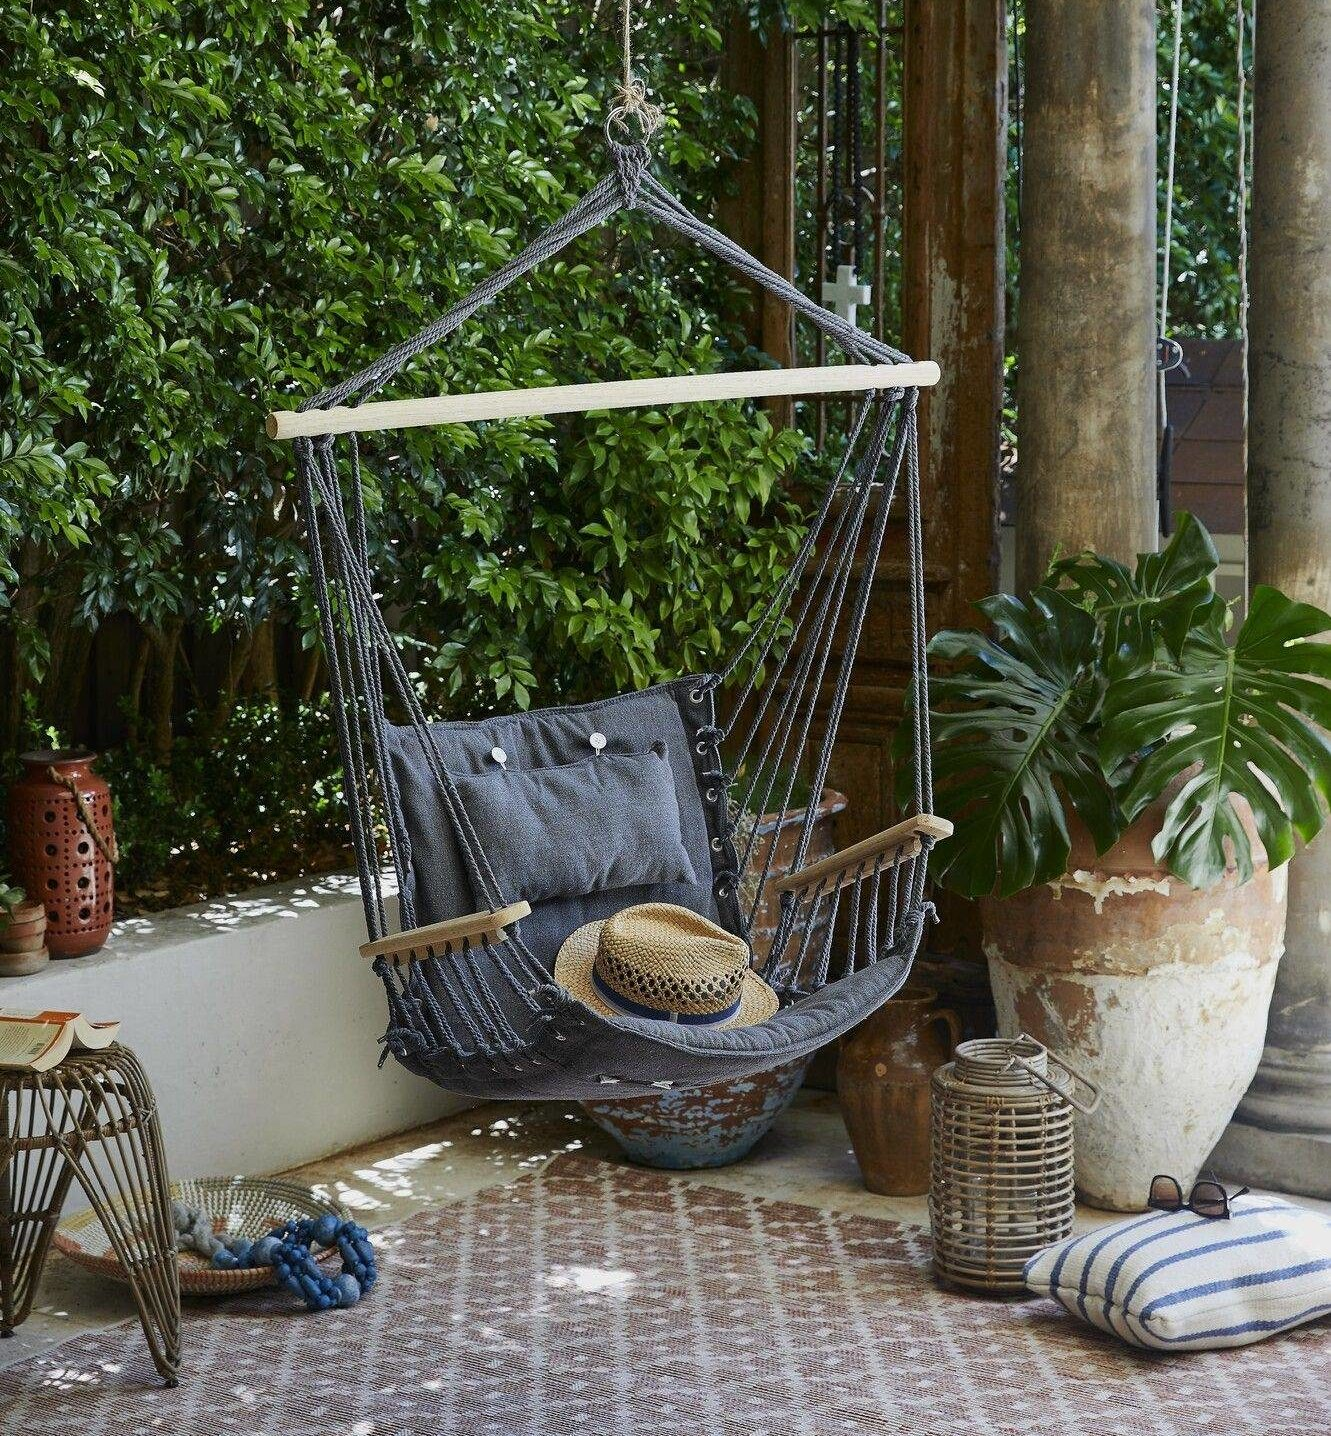 Modern Patio Design Alternative Seating Hammock Chair Lounger